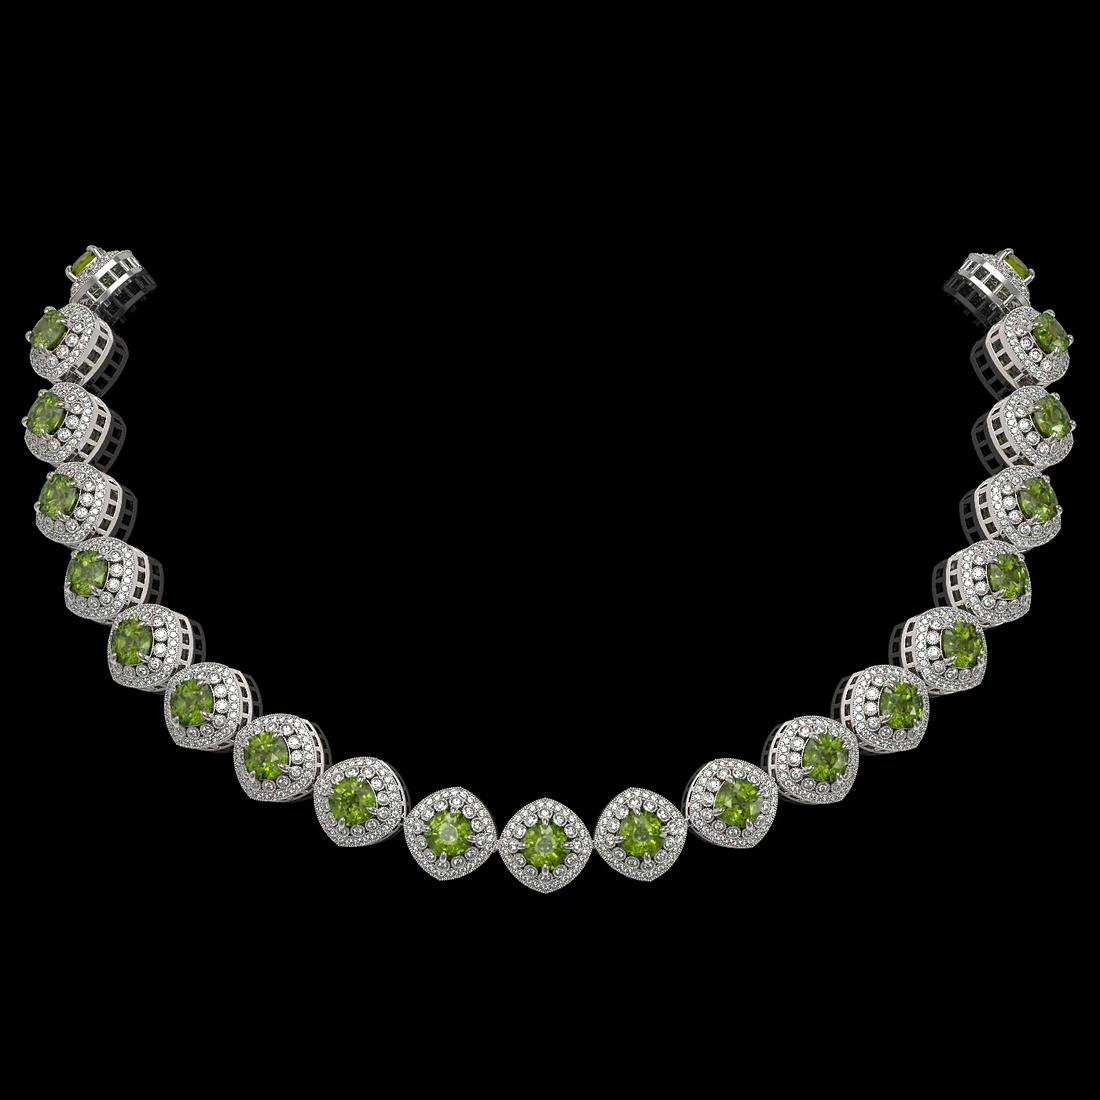 72.27 ctw Tourmaline & Diamond Necklace 14K White Gold